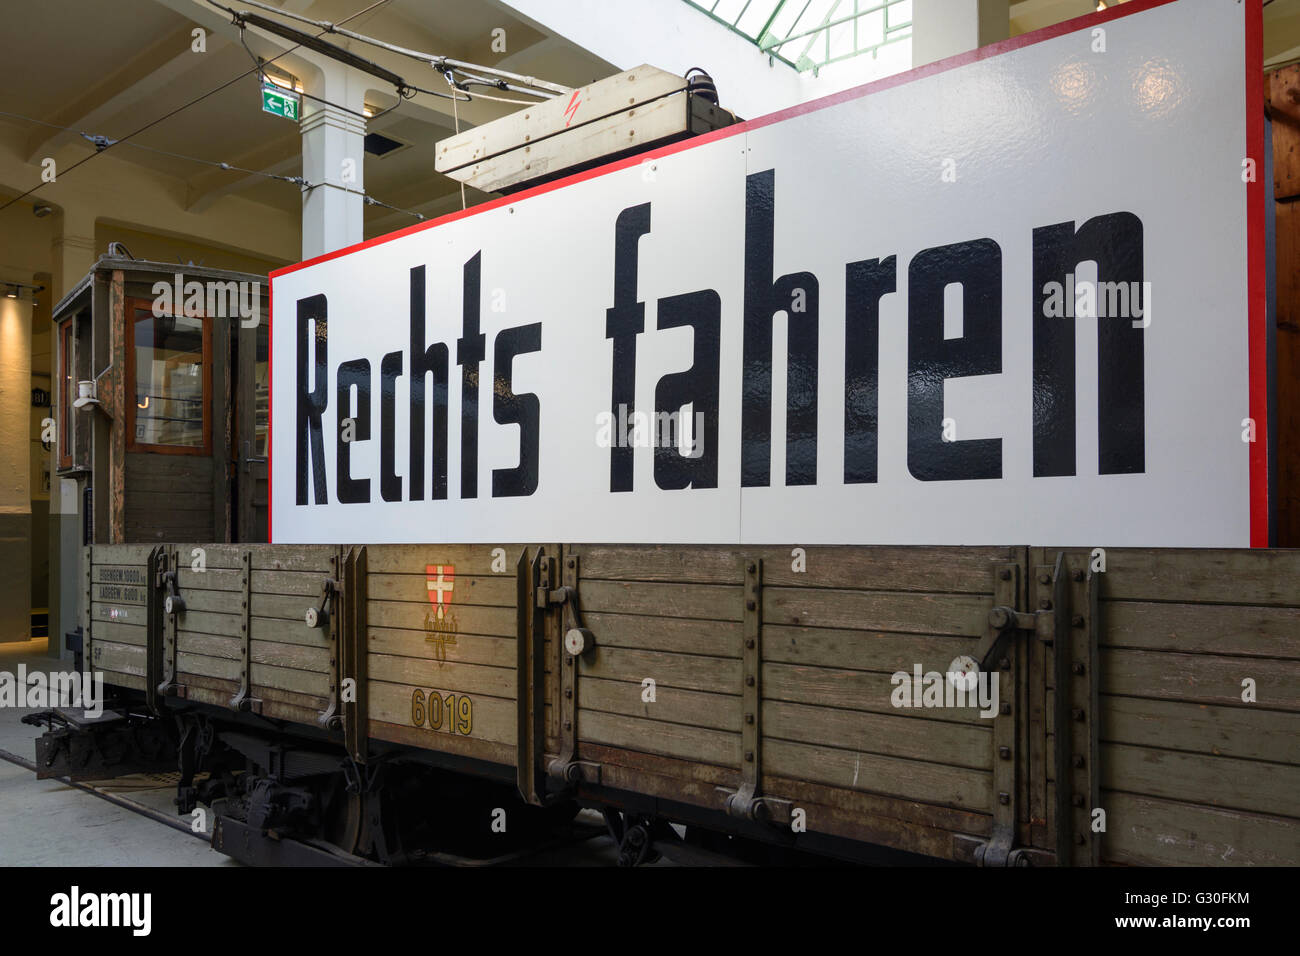 Transport Museum depot Wiener Linien : Snowplow auxiliary railcar as promotional car that after the German occupation - Stock Image